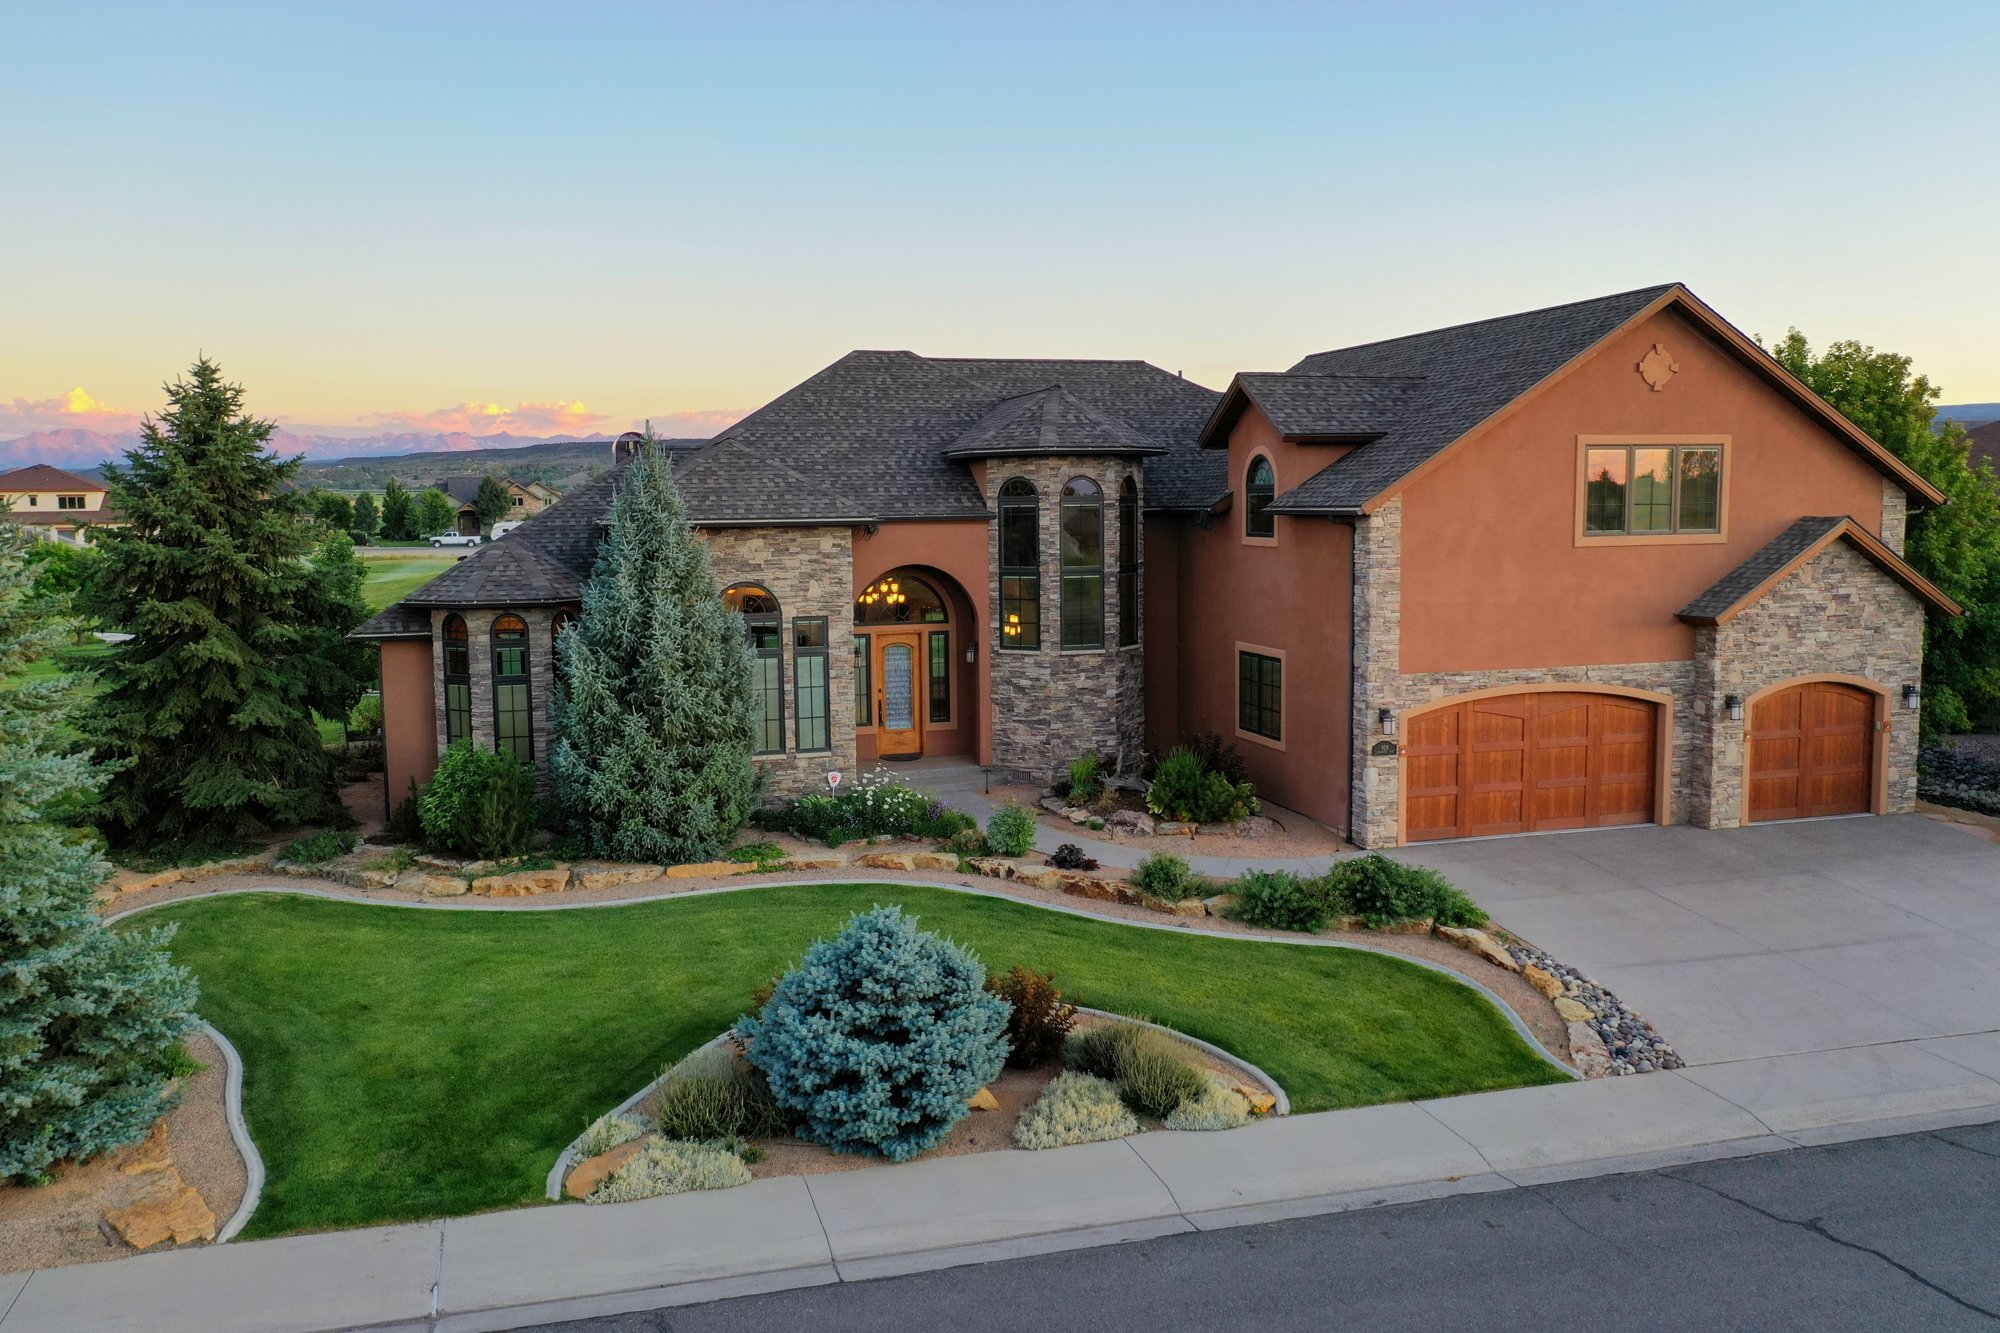 Aerial View Front of Home with Landscaping - 924 Courthouse Peak Lane Montrose, CO 81403 - Atha Team Golf Luxury Real Estate